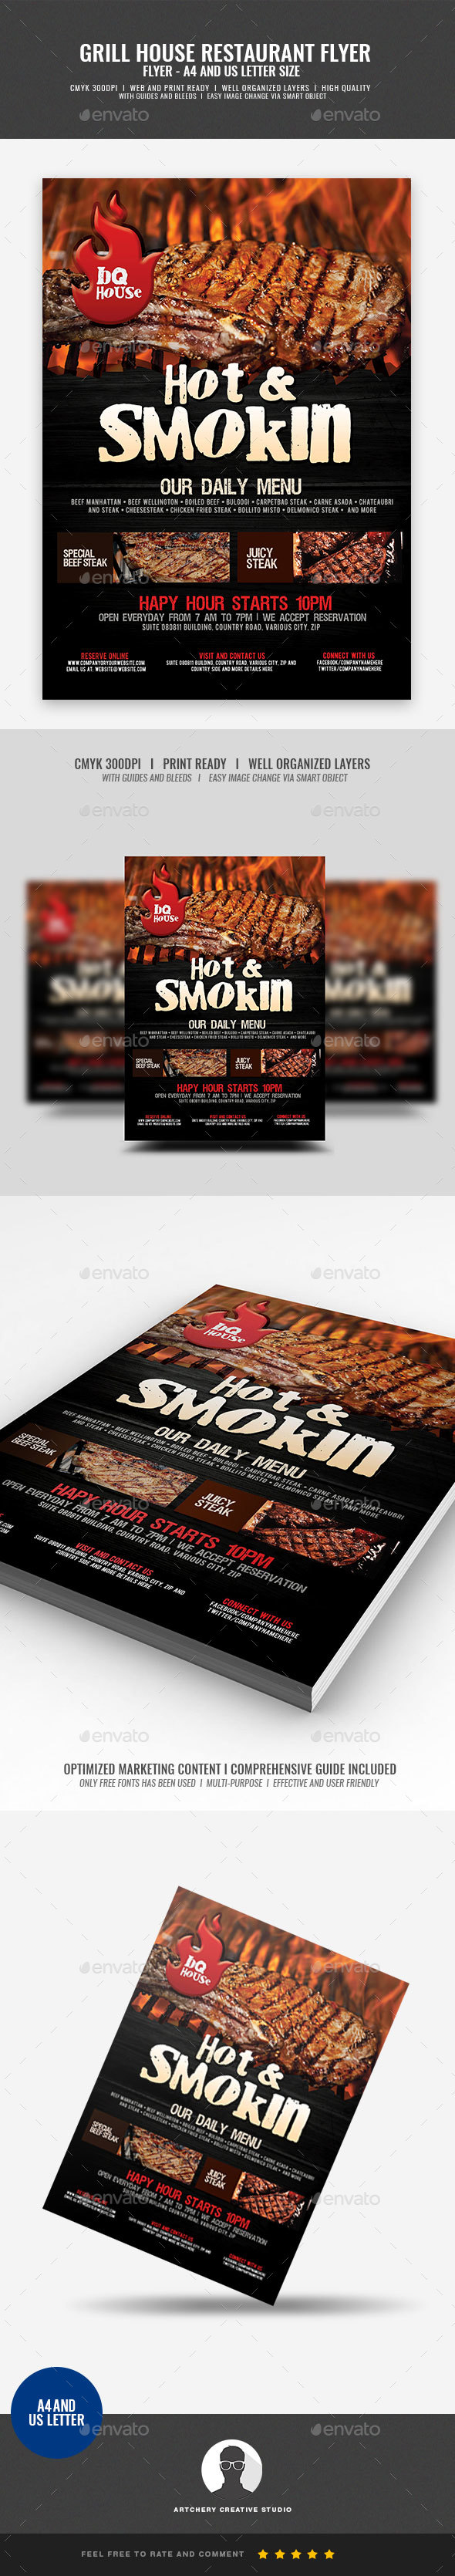 GraphicRiver Steakhouse Grill Restaurant Flyer 20960382